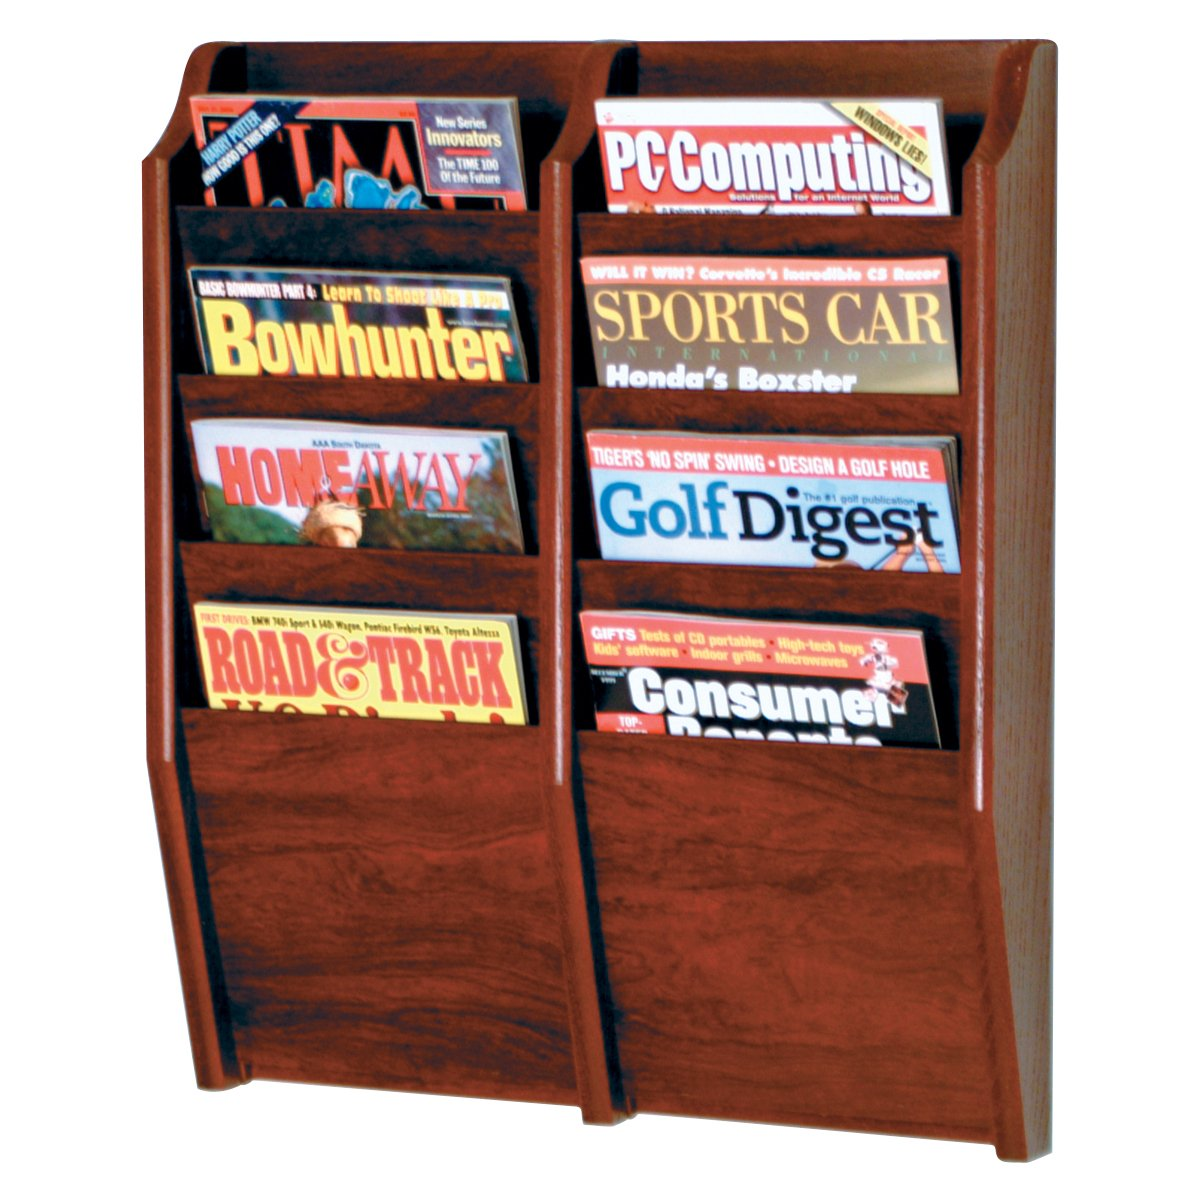 Wall mounted magazine rack shelf organizer wood display for Magazine racks for home